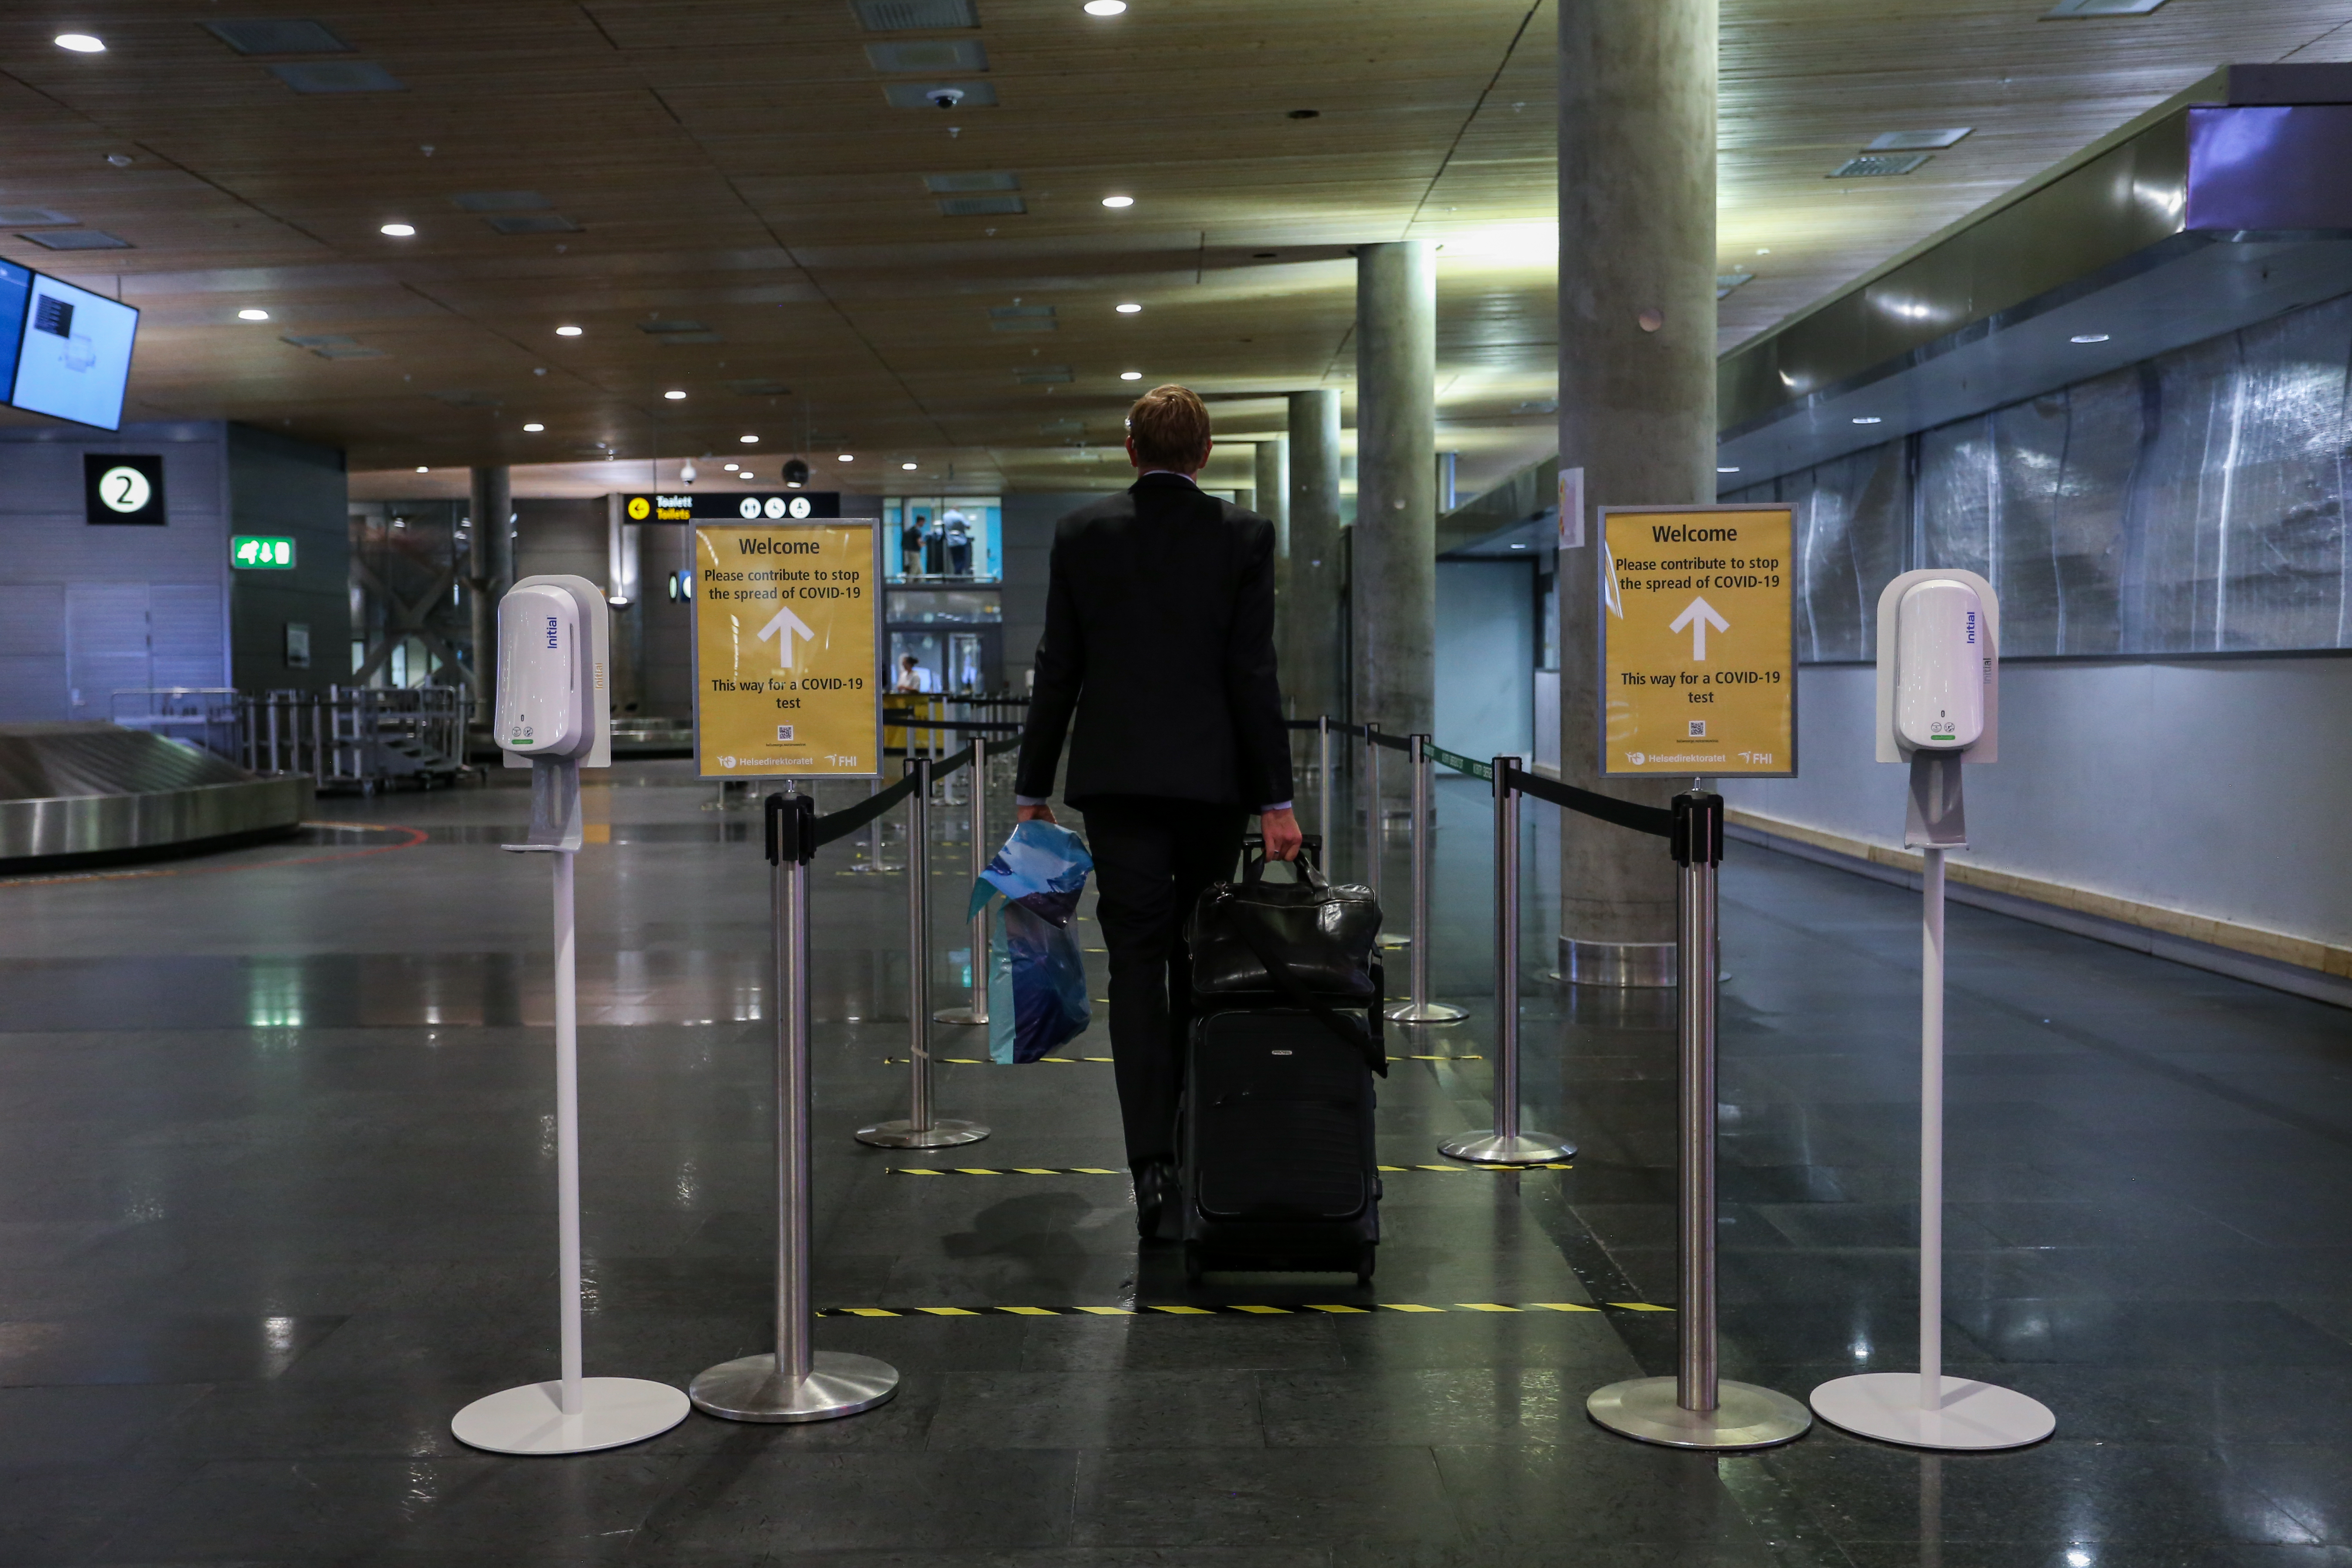 Covid 19 Testing Centre Established In Baggage Hall At Avinor Oslo Airport The Avinor Group